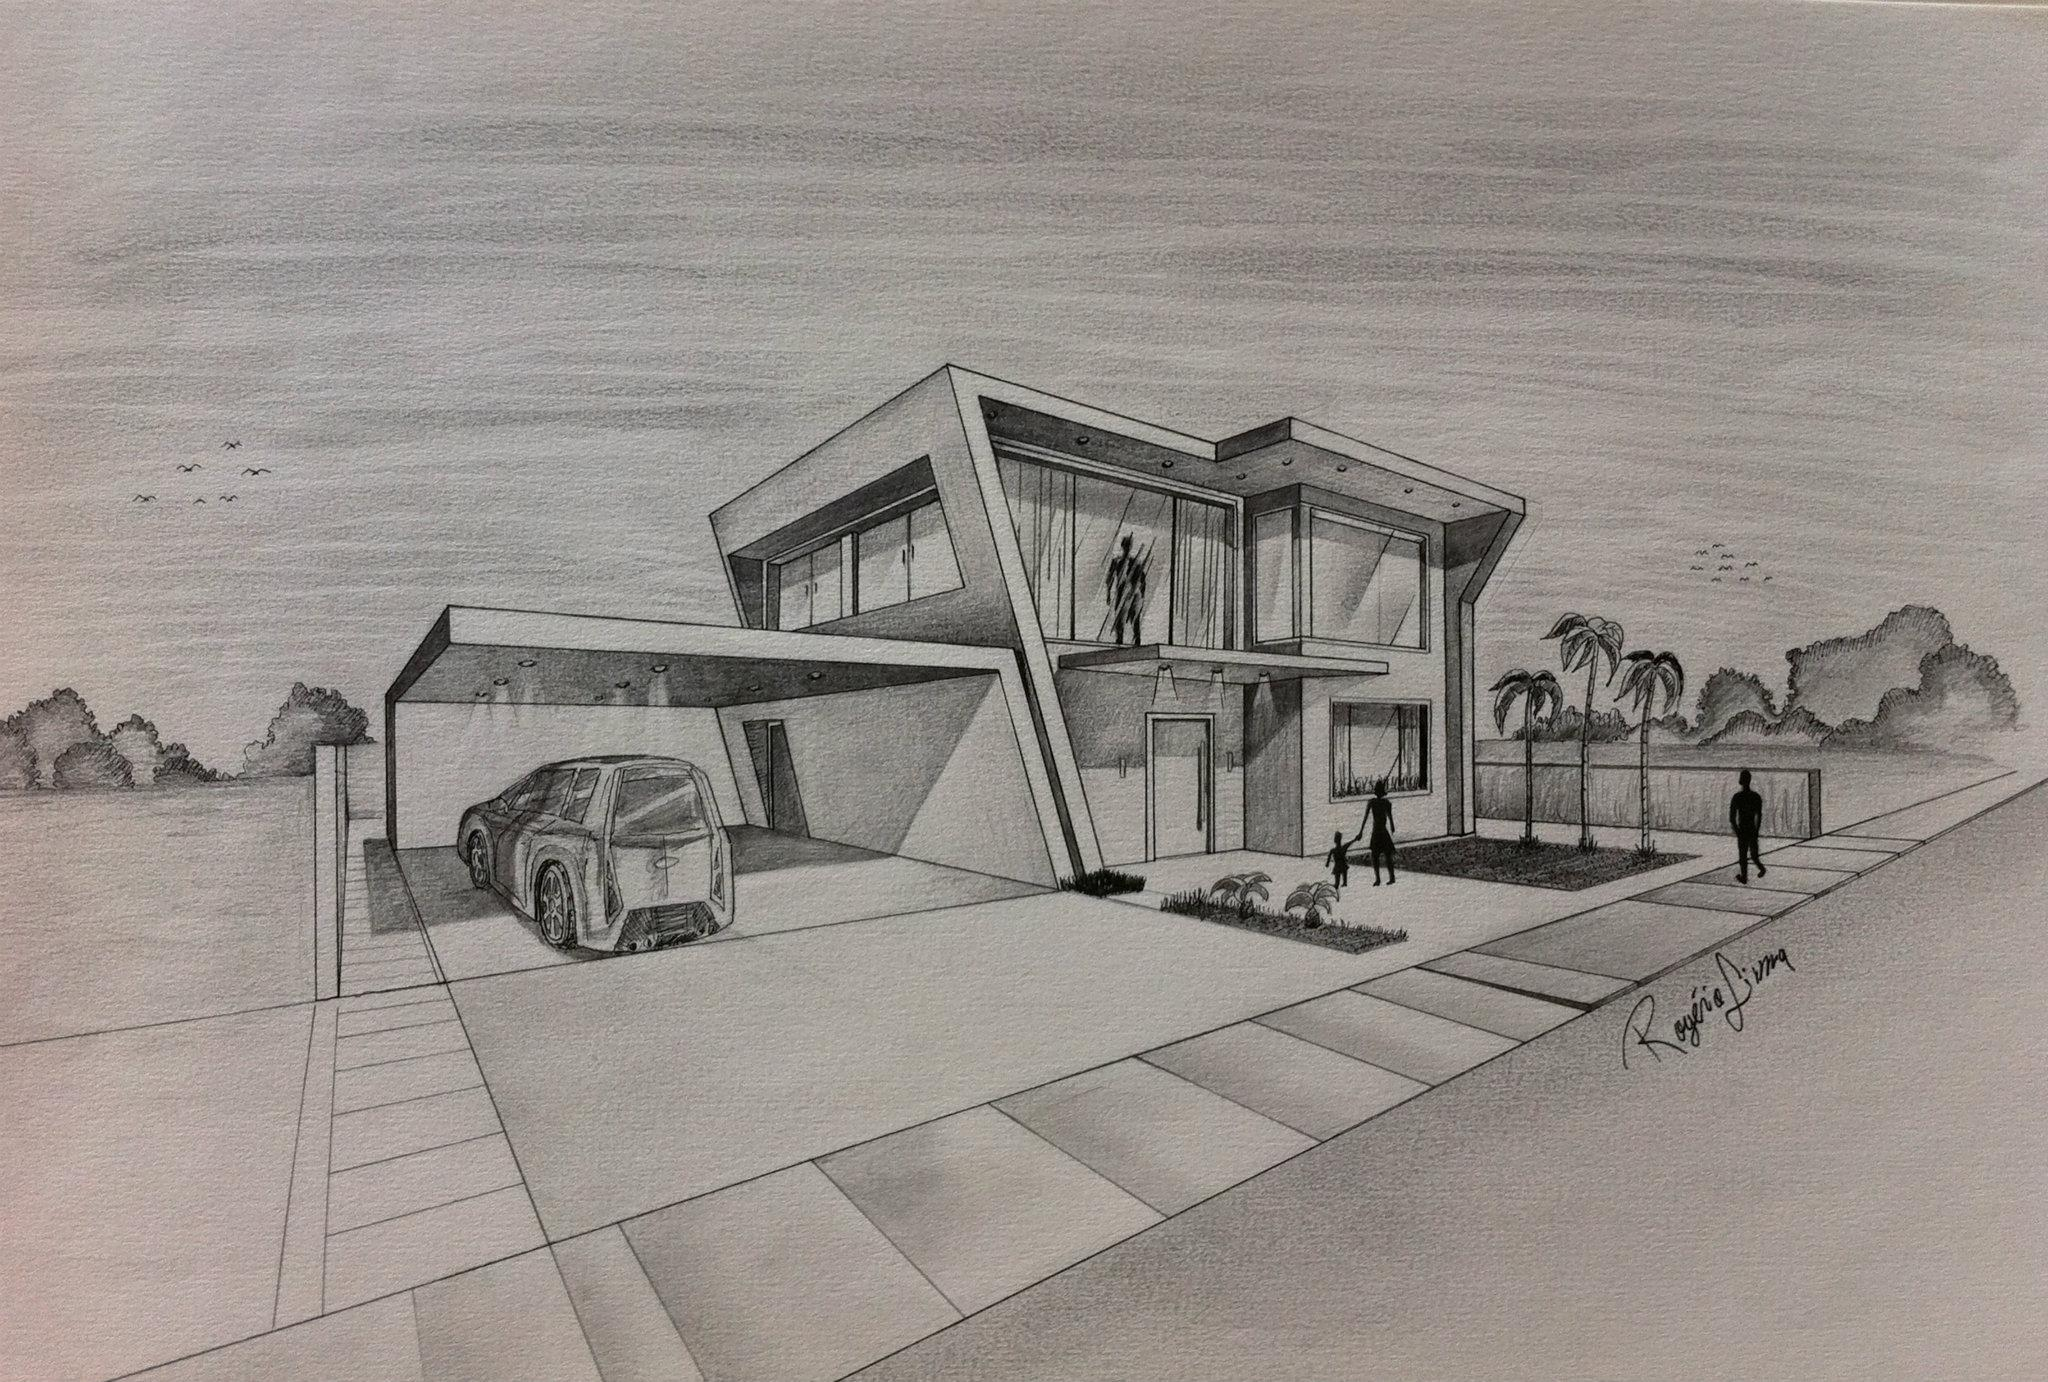 Architect hand drawing at free for for Online architecture drawing